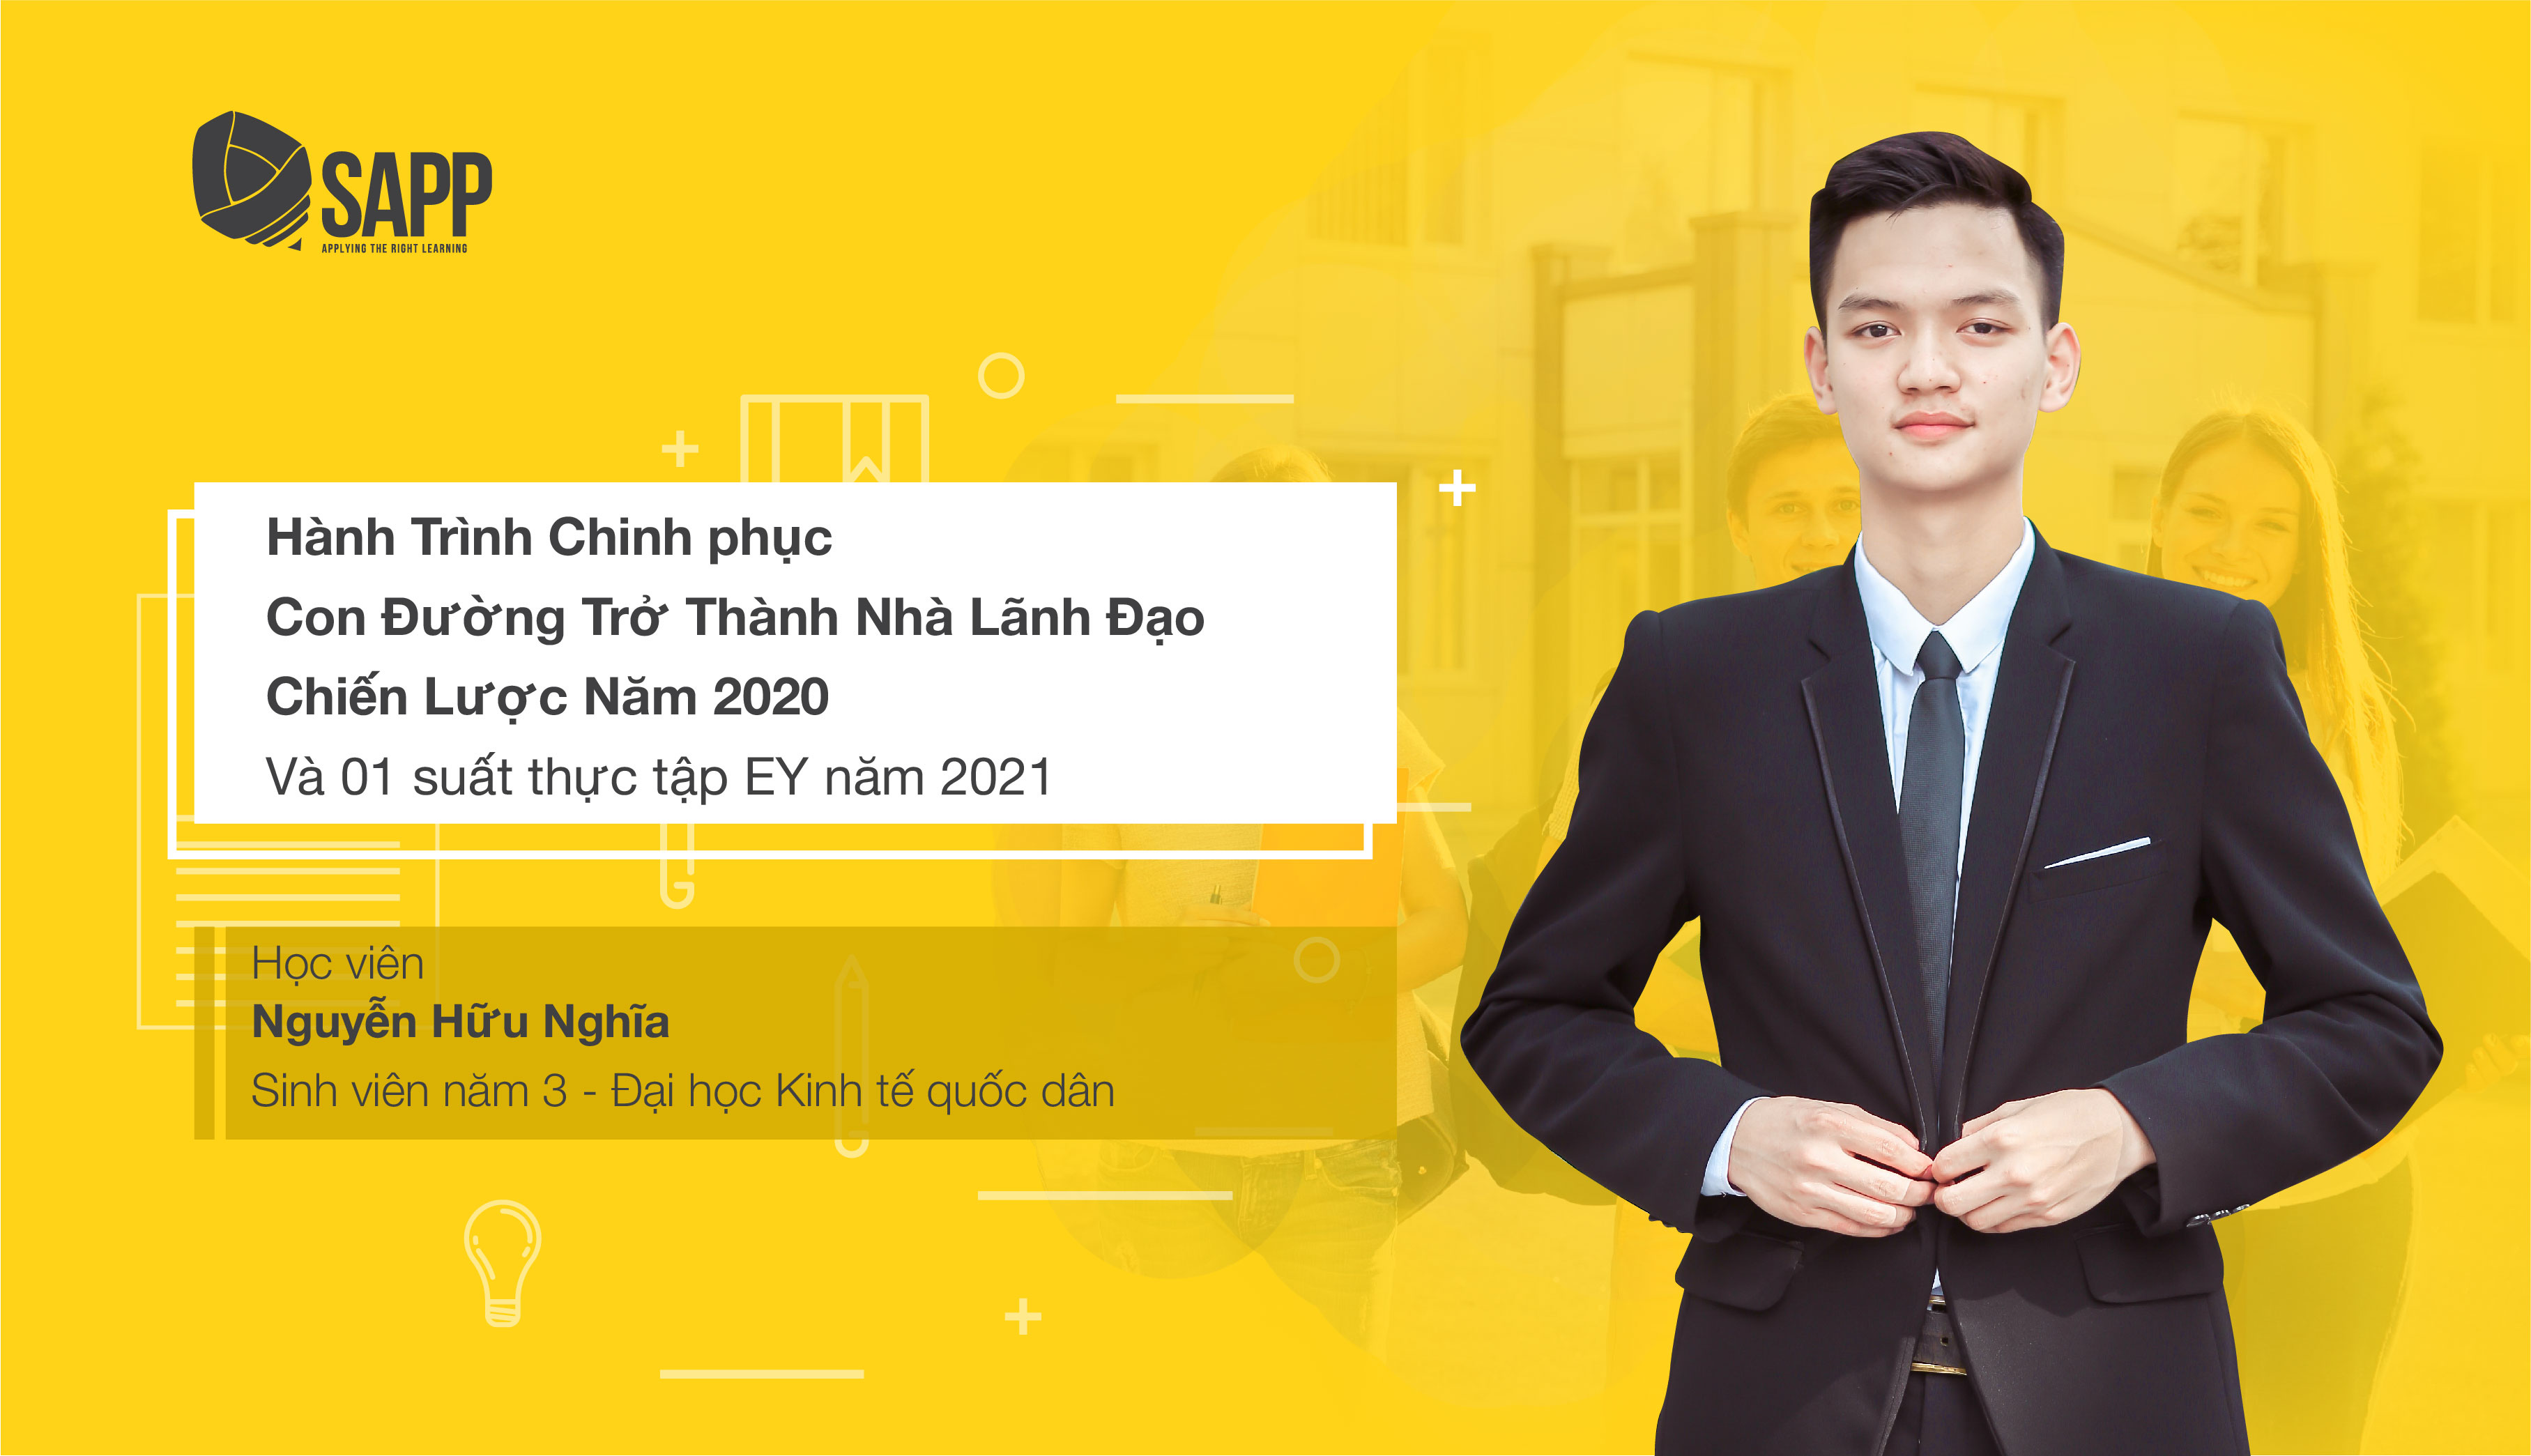 Nguyễn Hữu Nghĩa - Top 20 Pathway to Strategic Business Leader 2020